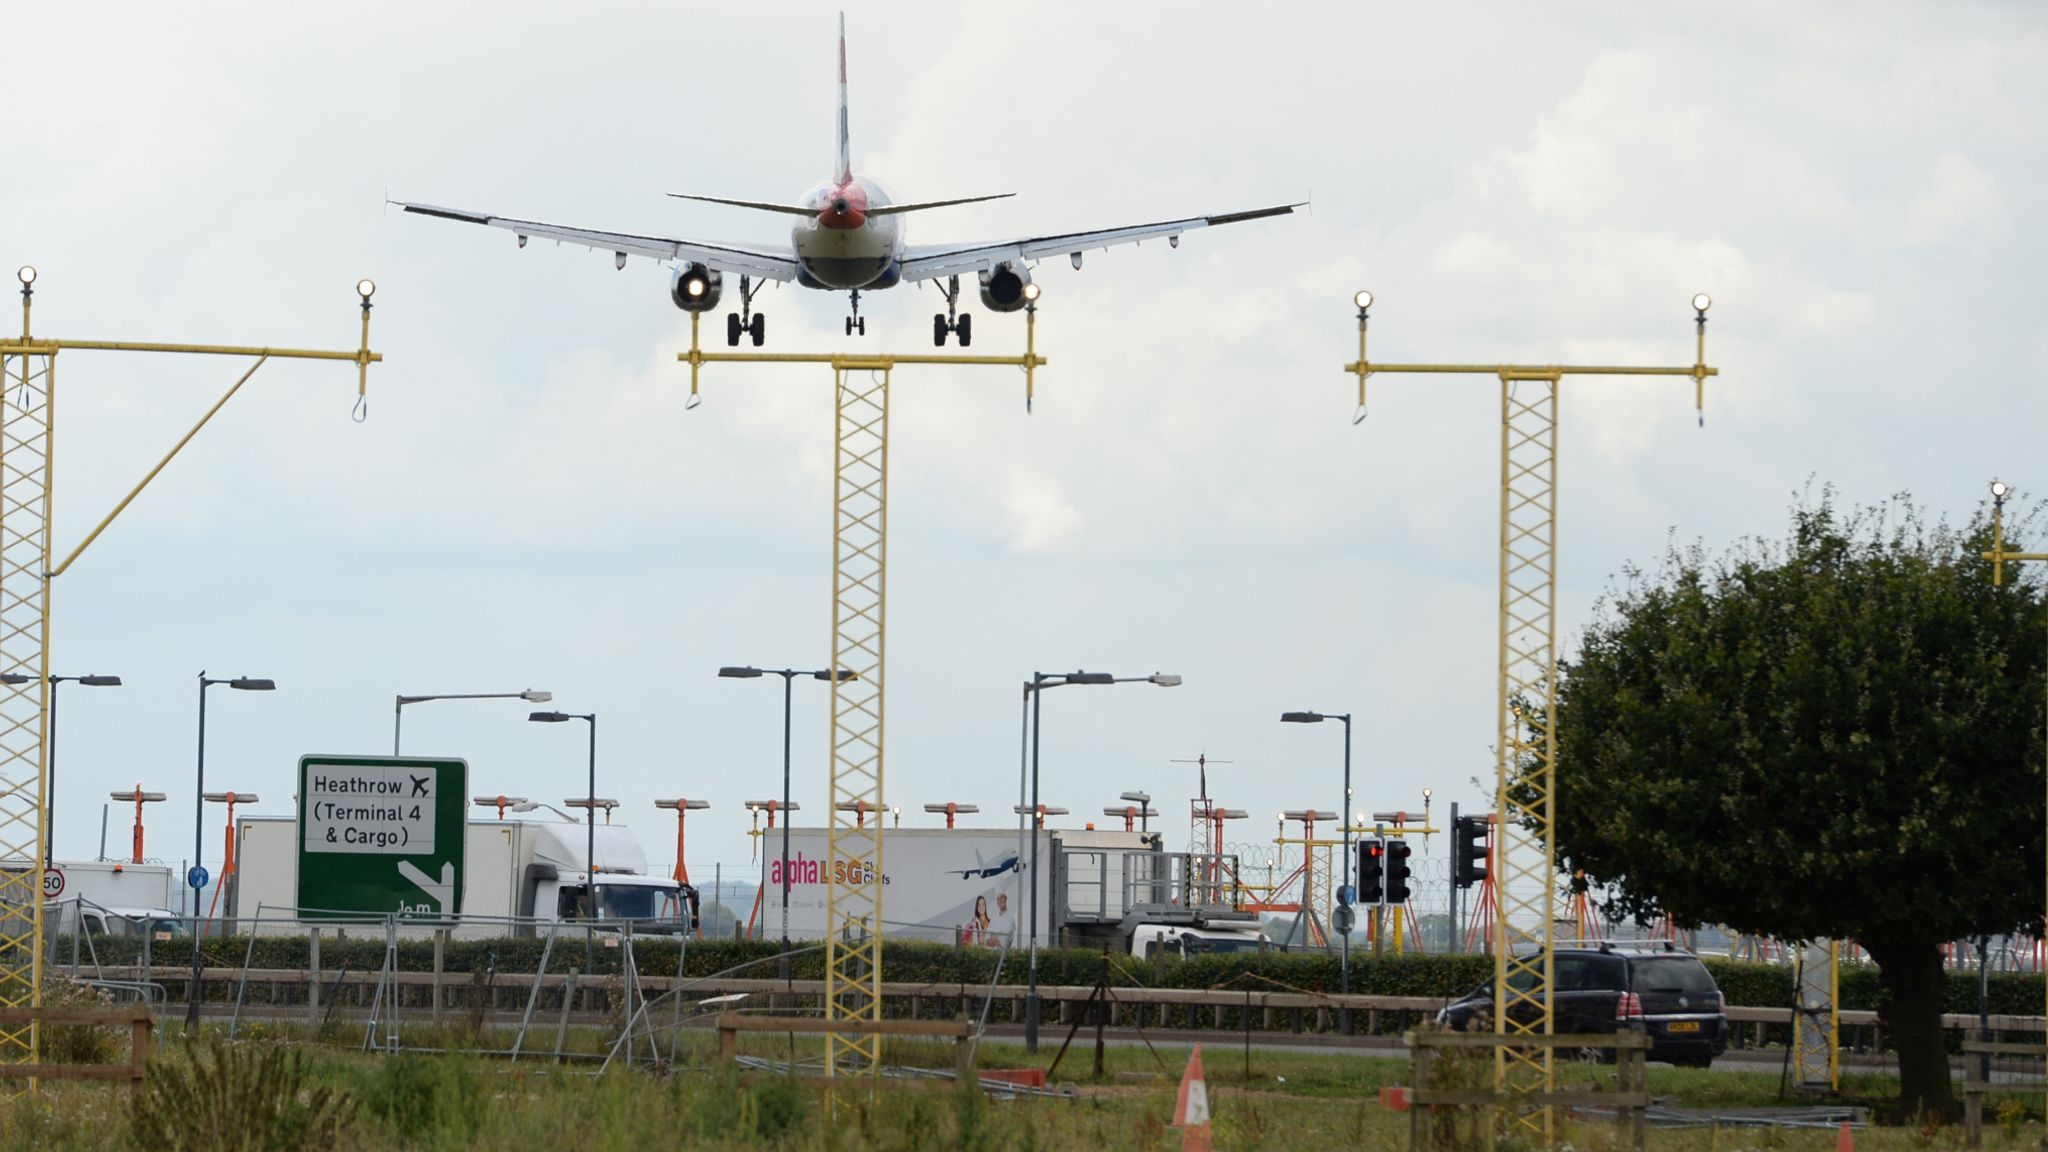 Heathrow delays: Dozens of flights affected after RAF closes airspace